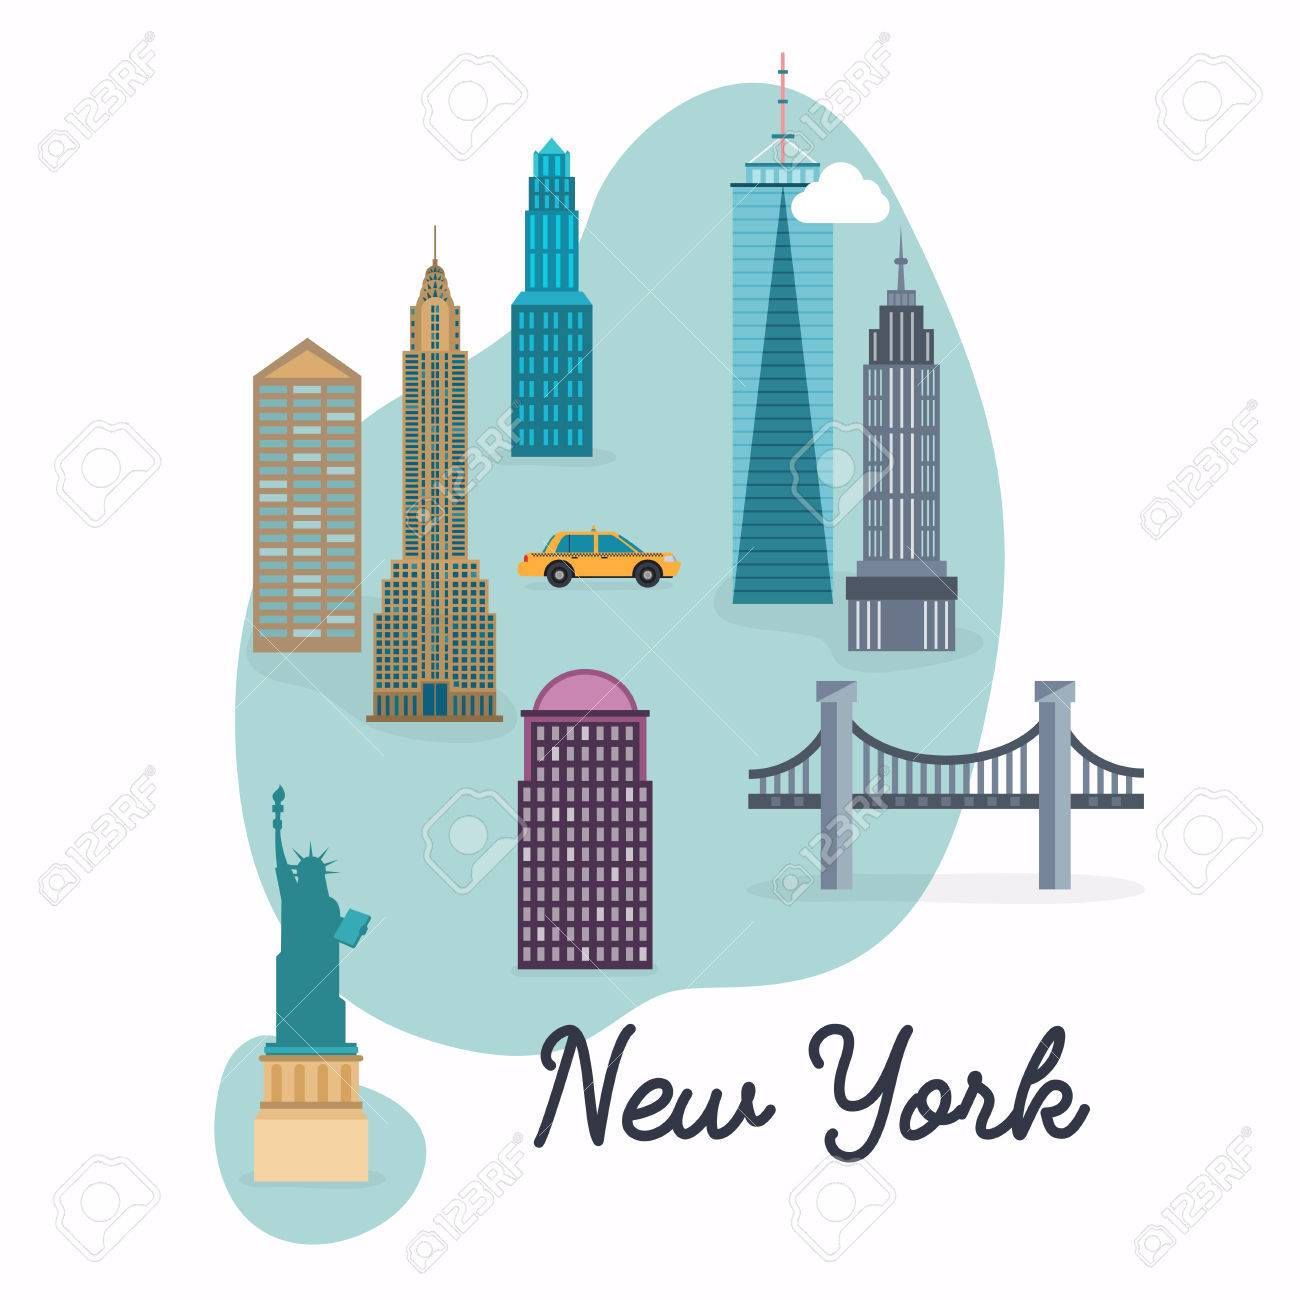 new york city travel map and vector landscape of buildings and famous landmarks vector